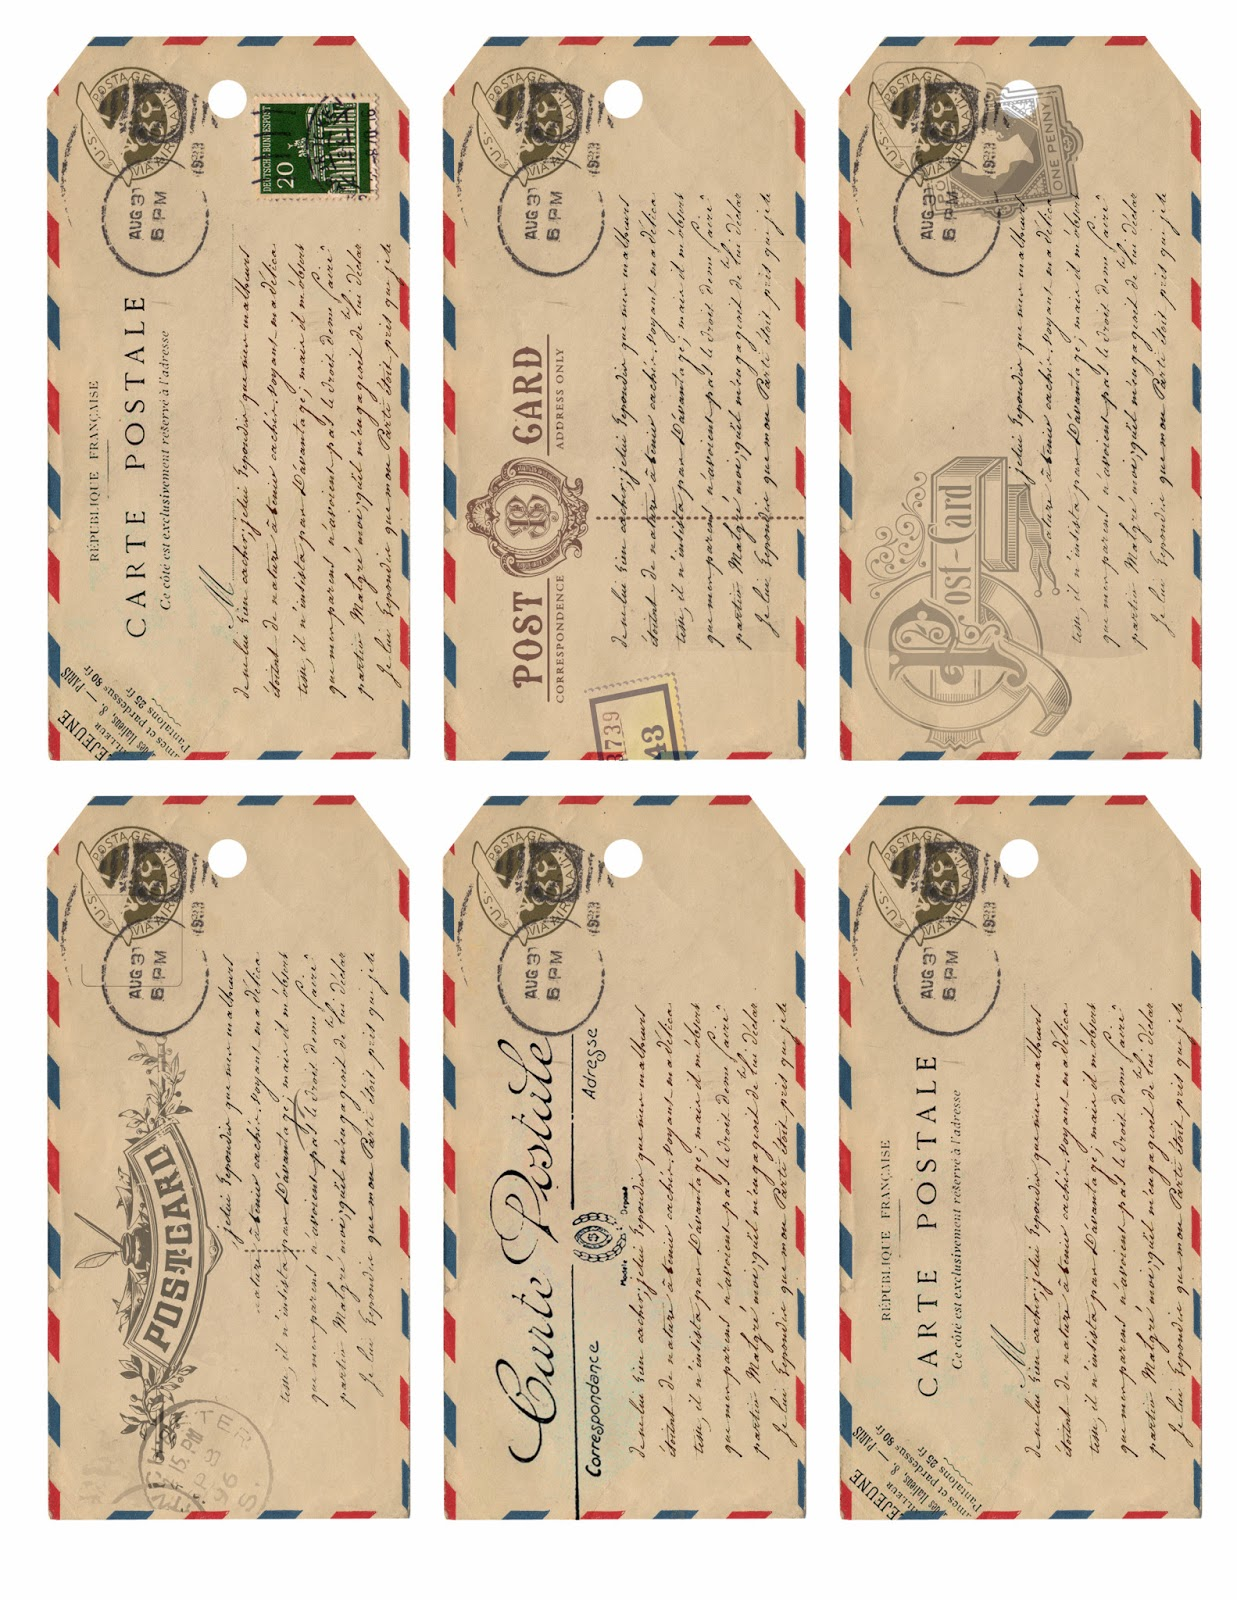 Vintage Wedding Gift Tag Templates Free : With Valentines Day near, I thought I would offer a free gift tag ...